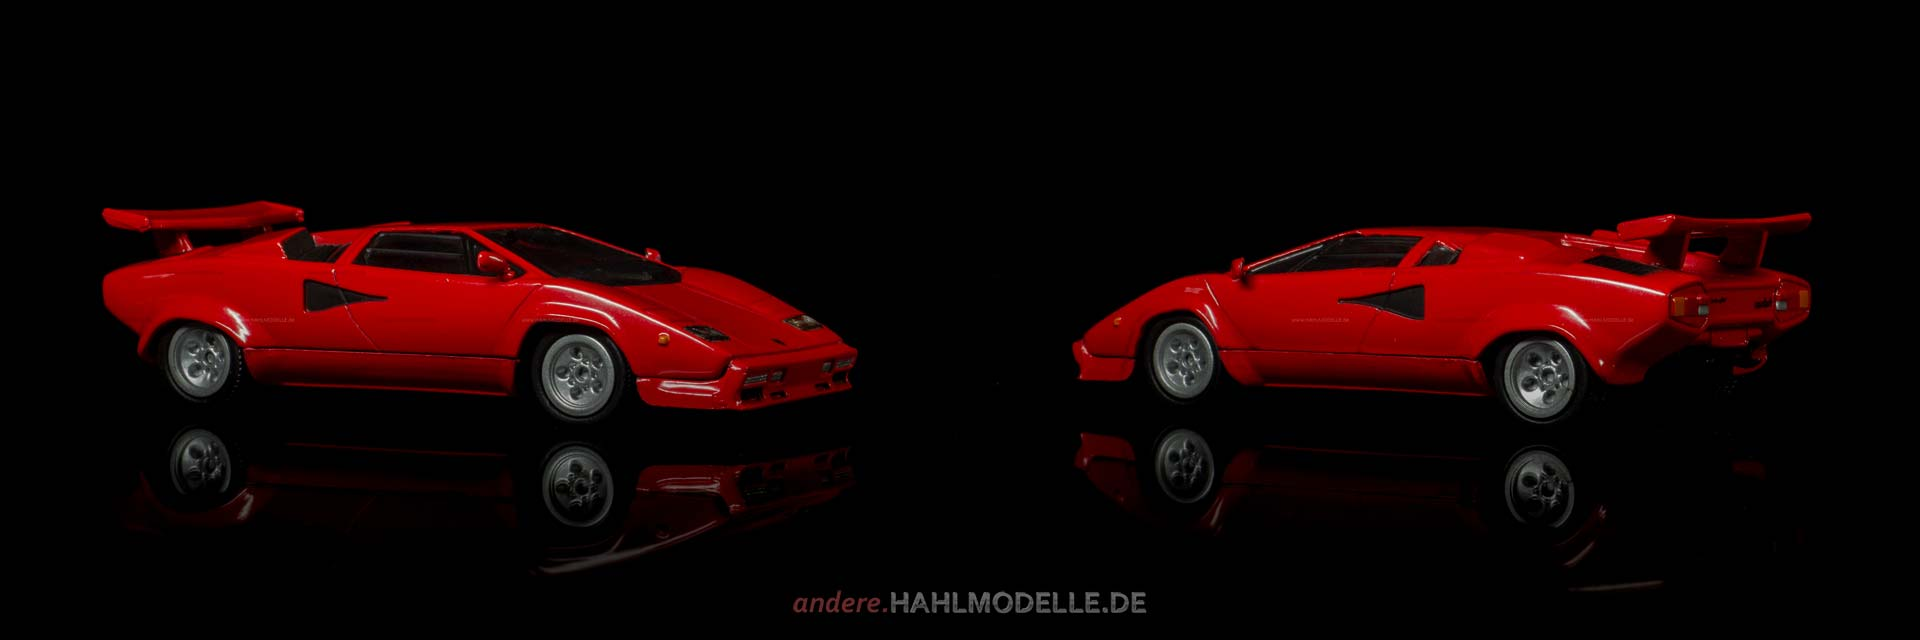 Lamborghini Countach | Coupé | Ixo (Del Prado Car Collection) | 1:43 | www.andere.hahlmodelle.de